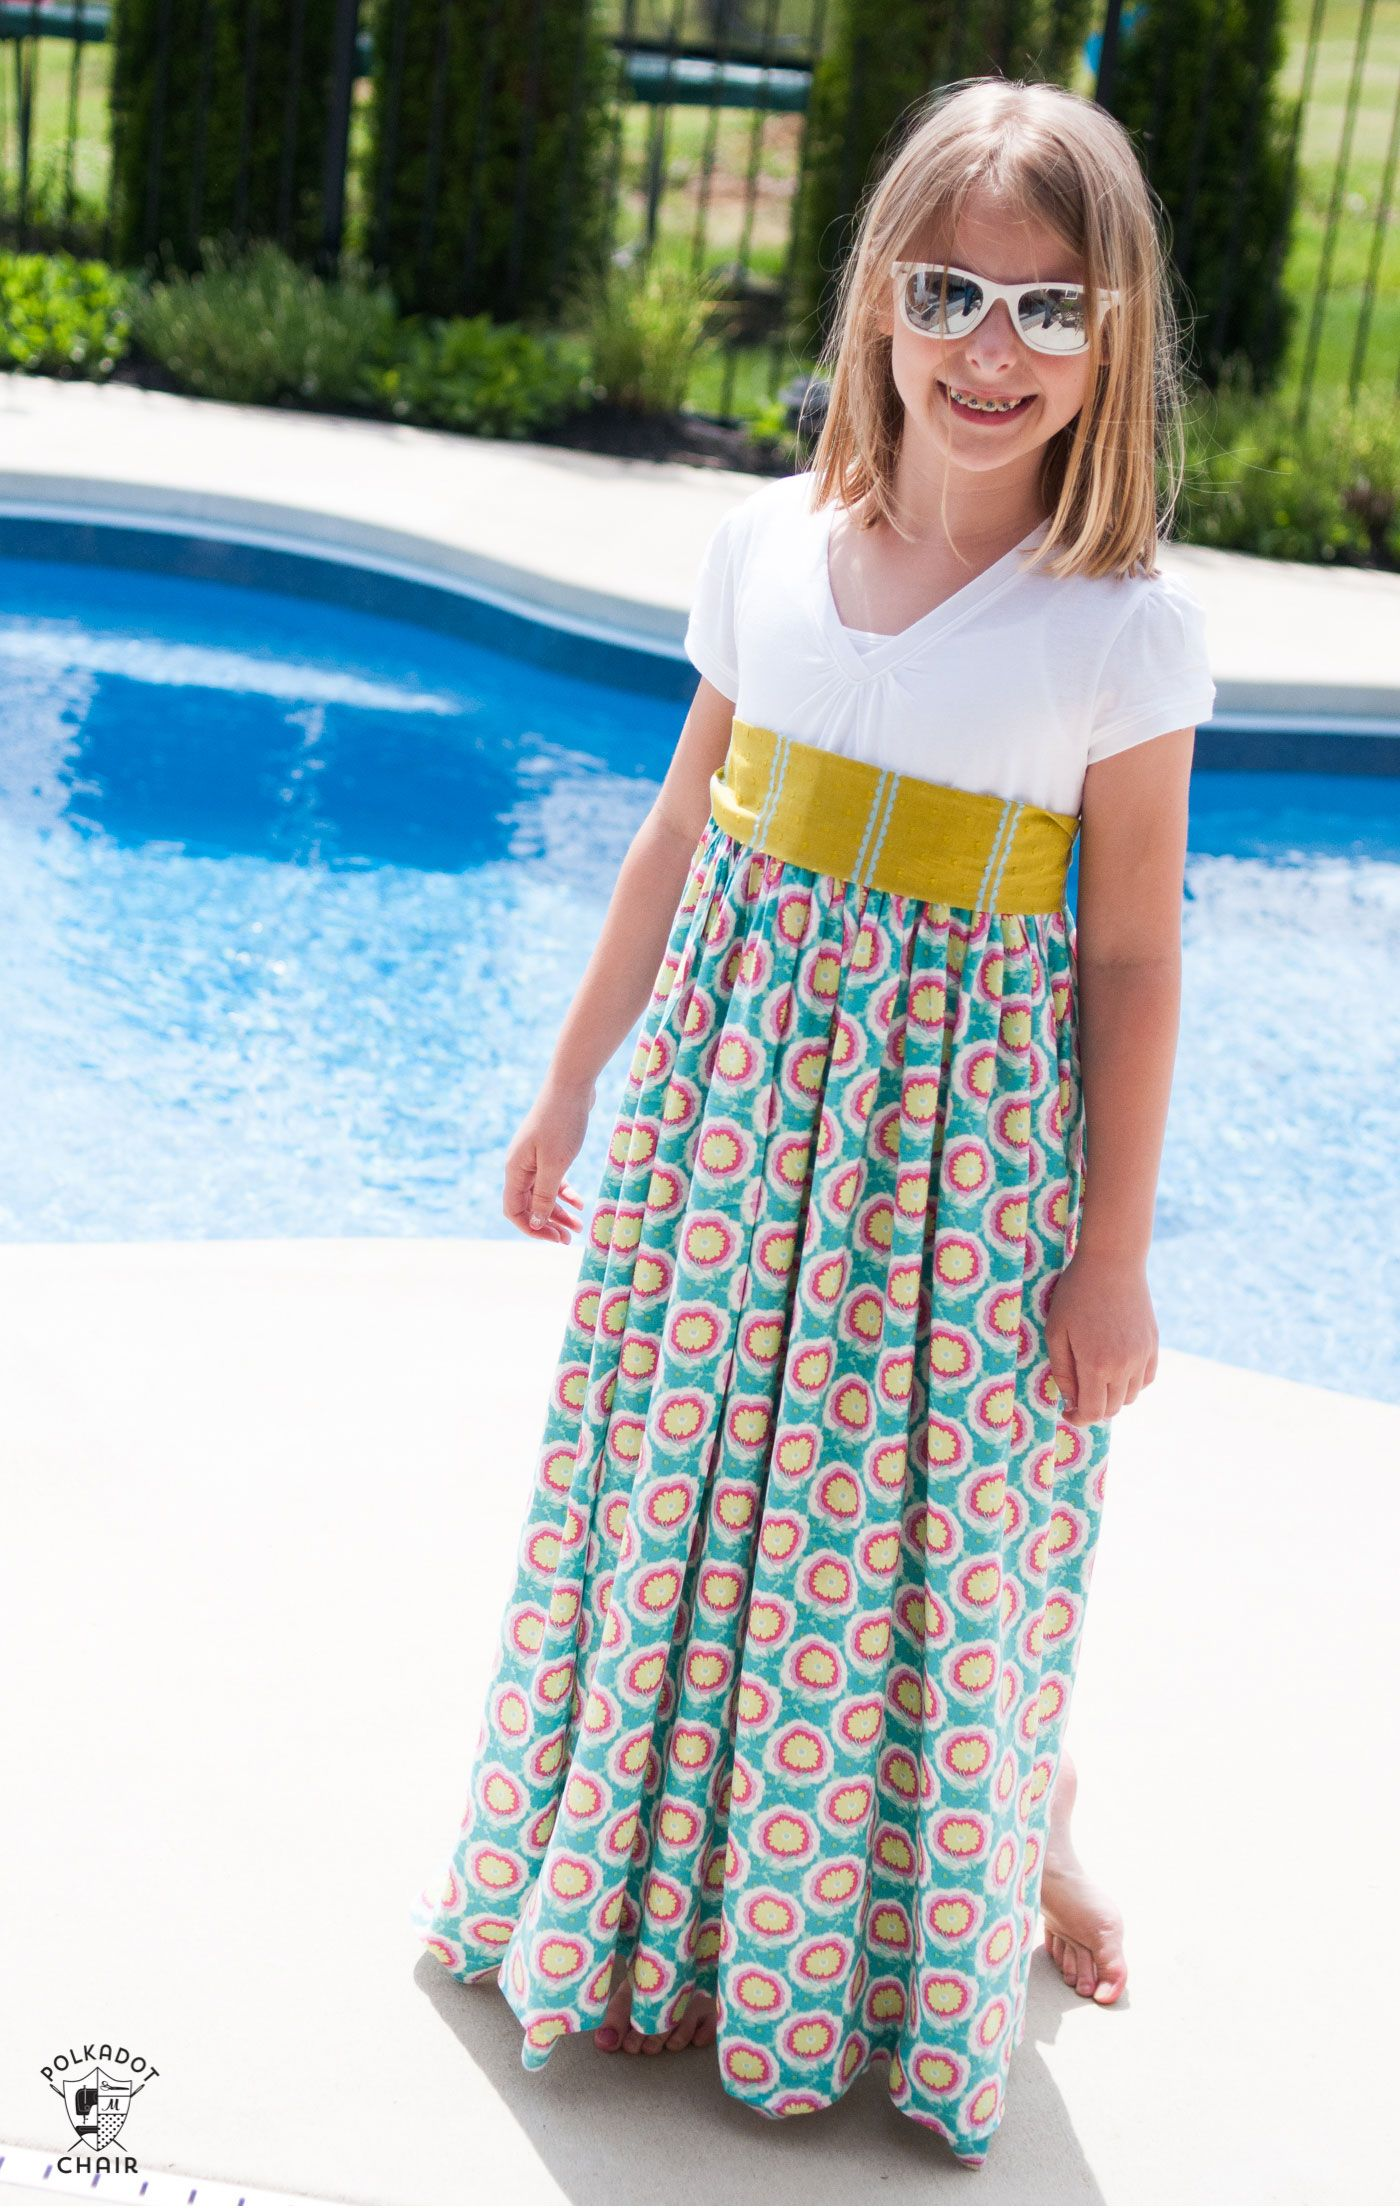 bb4f2a738 Upcycle a T-shirt into a girls maxi dress with this sewing tutorial. A